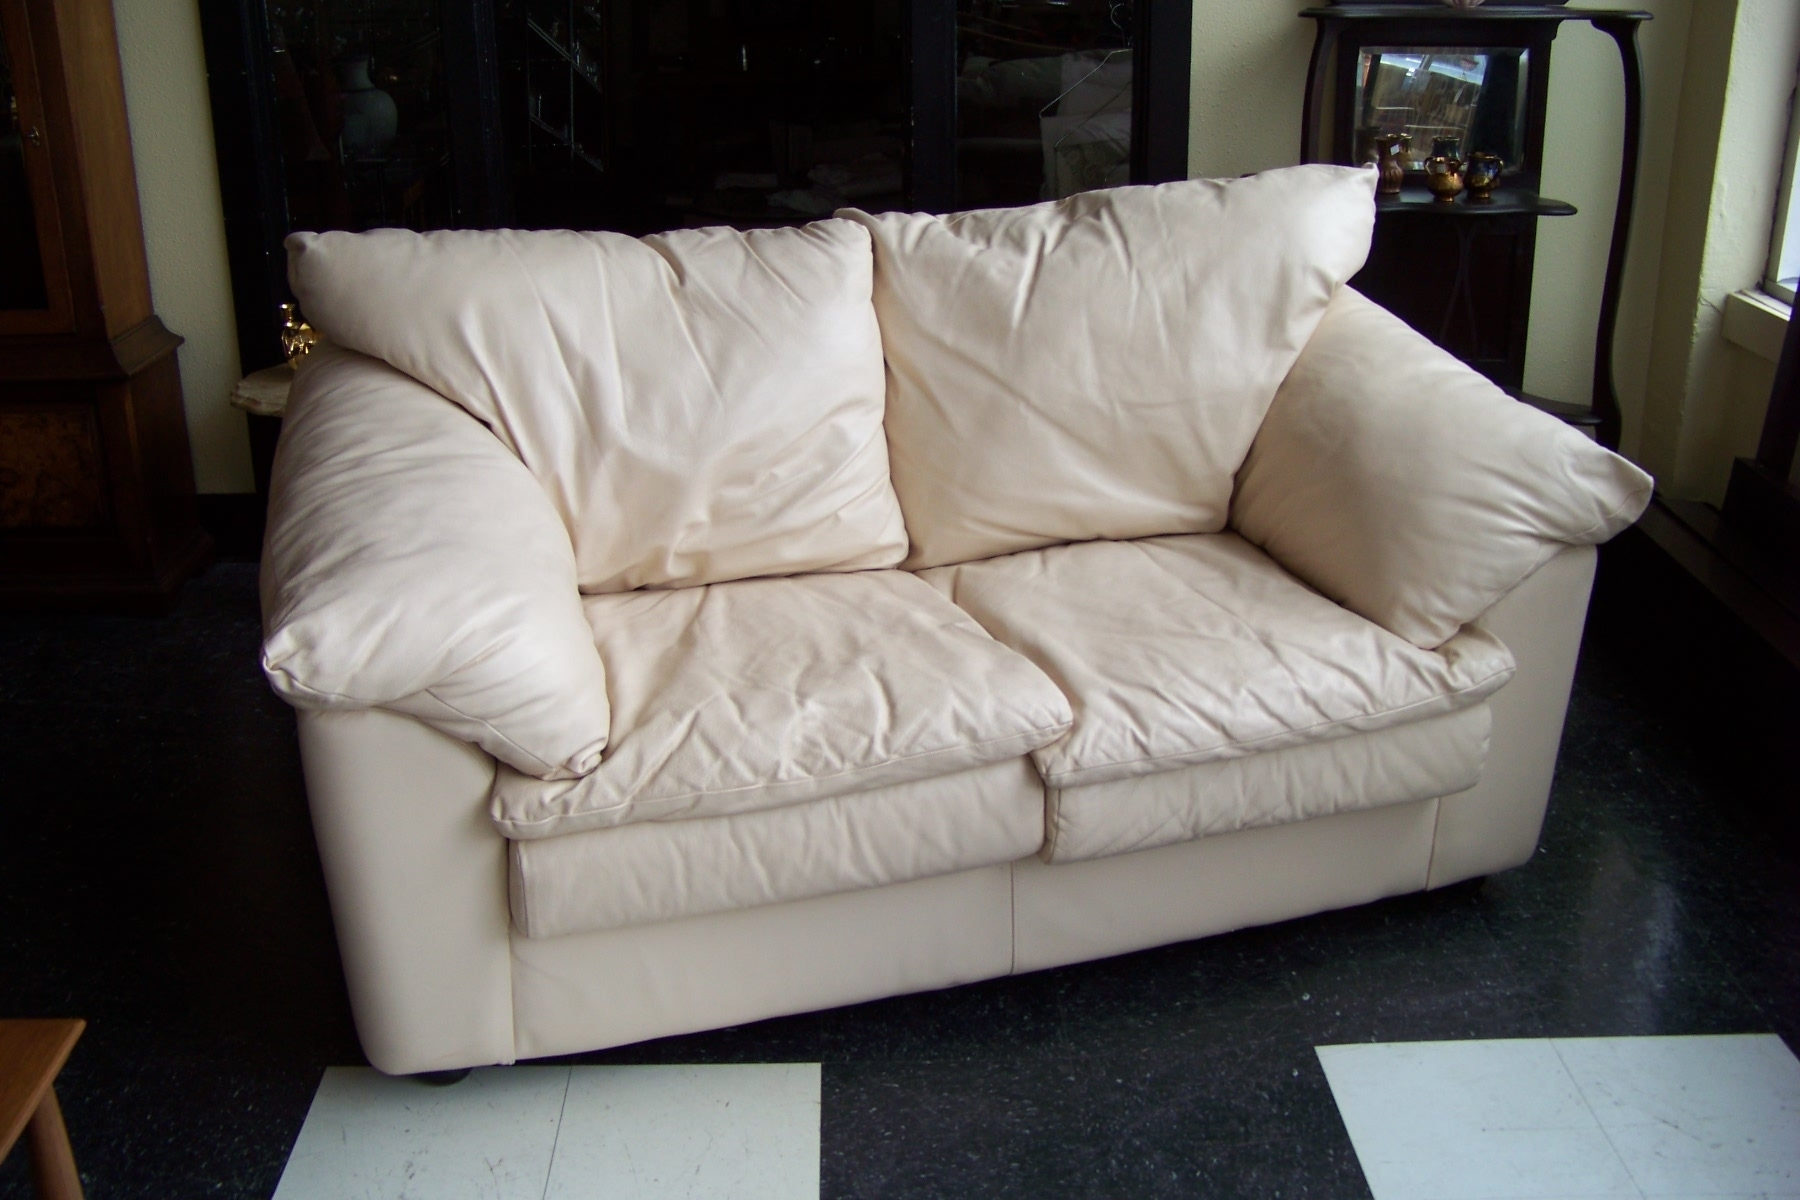 2018 Articles With Cream Colored Leather Sofa Set Tag Couch Camel Regarding Cream Colored Sofas (View 7 of 15)